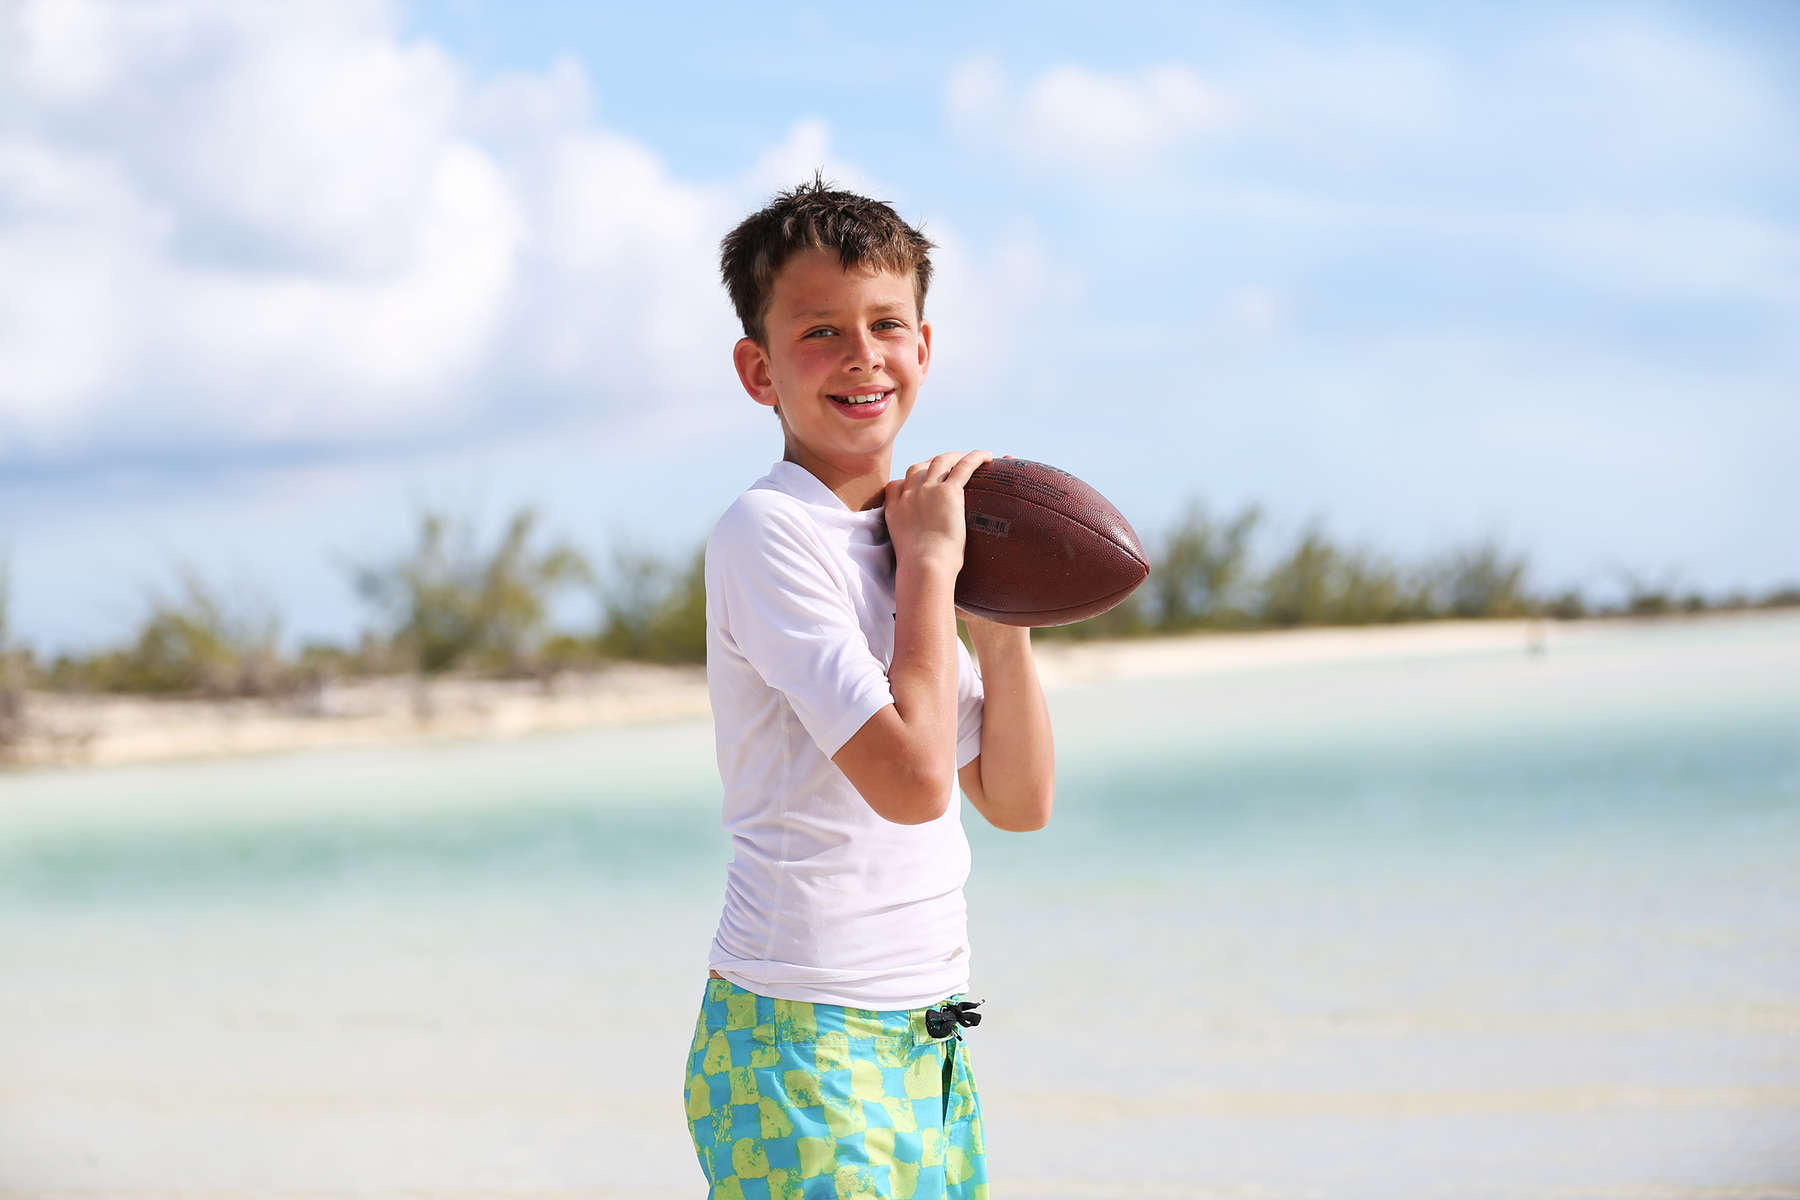 Braden-with-football